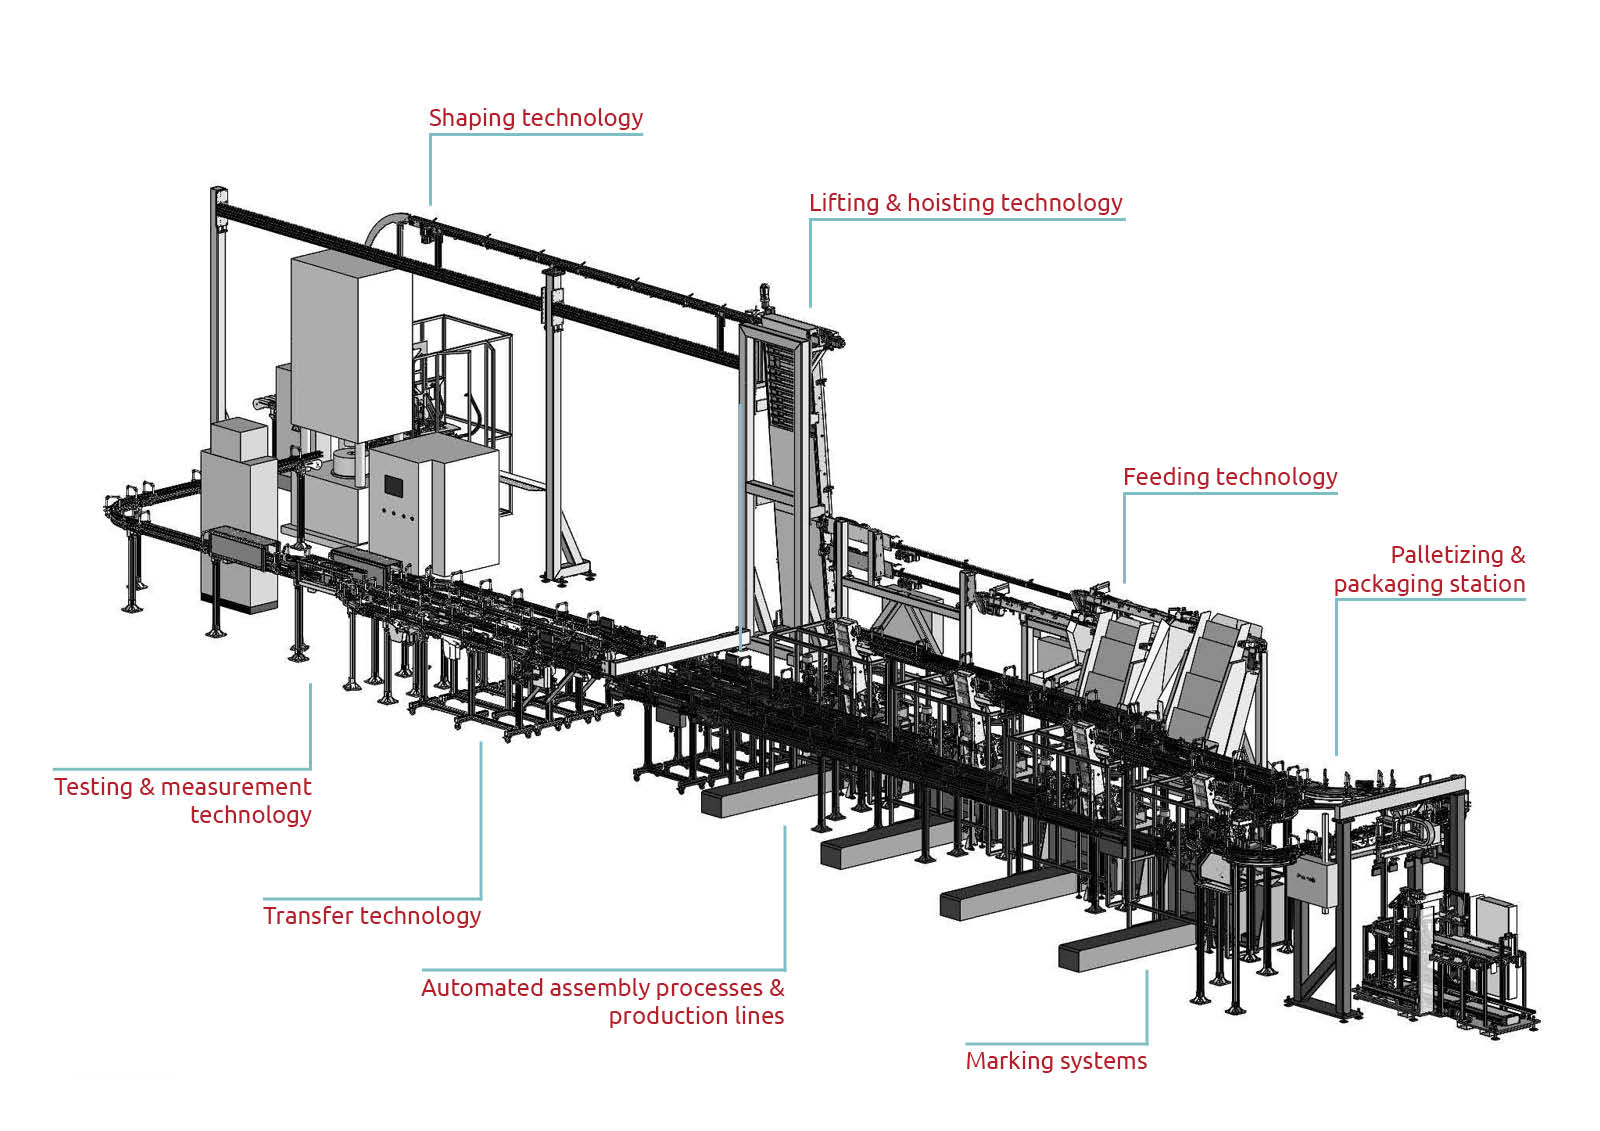 Graphic representation of Interlinking and assembly automation from Köberlein & Seigert